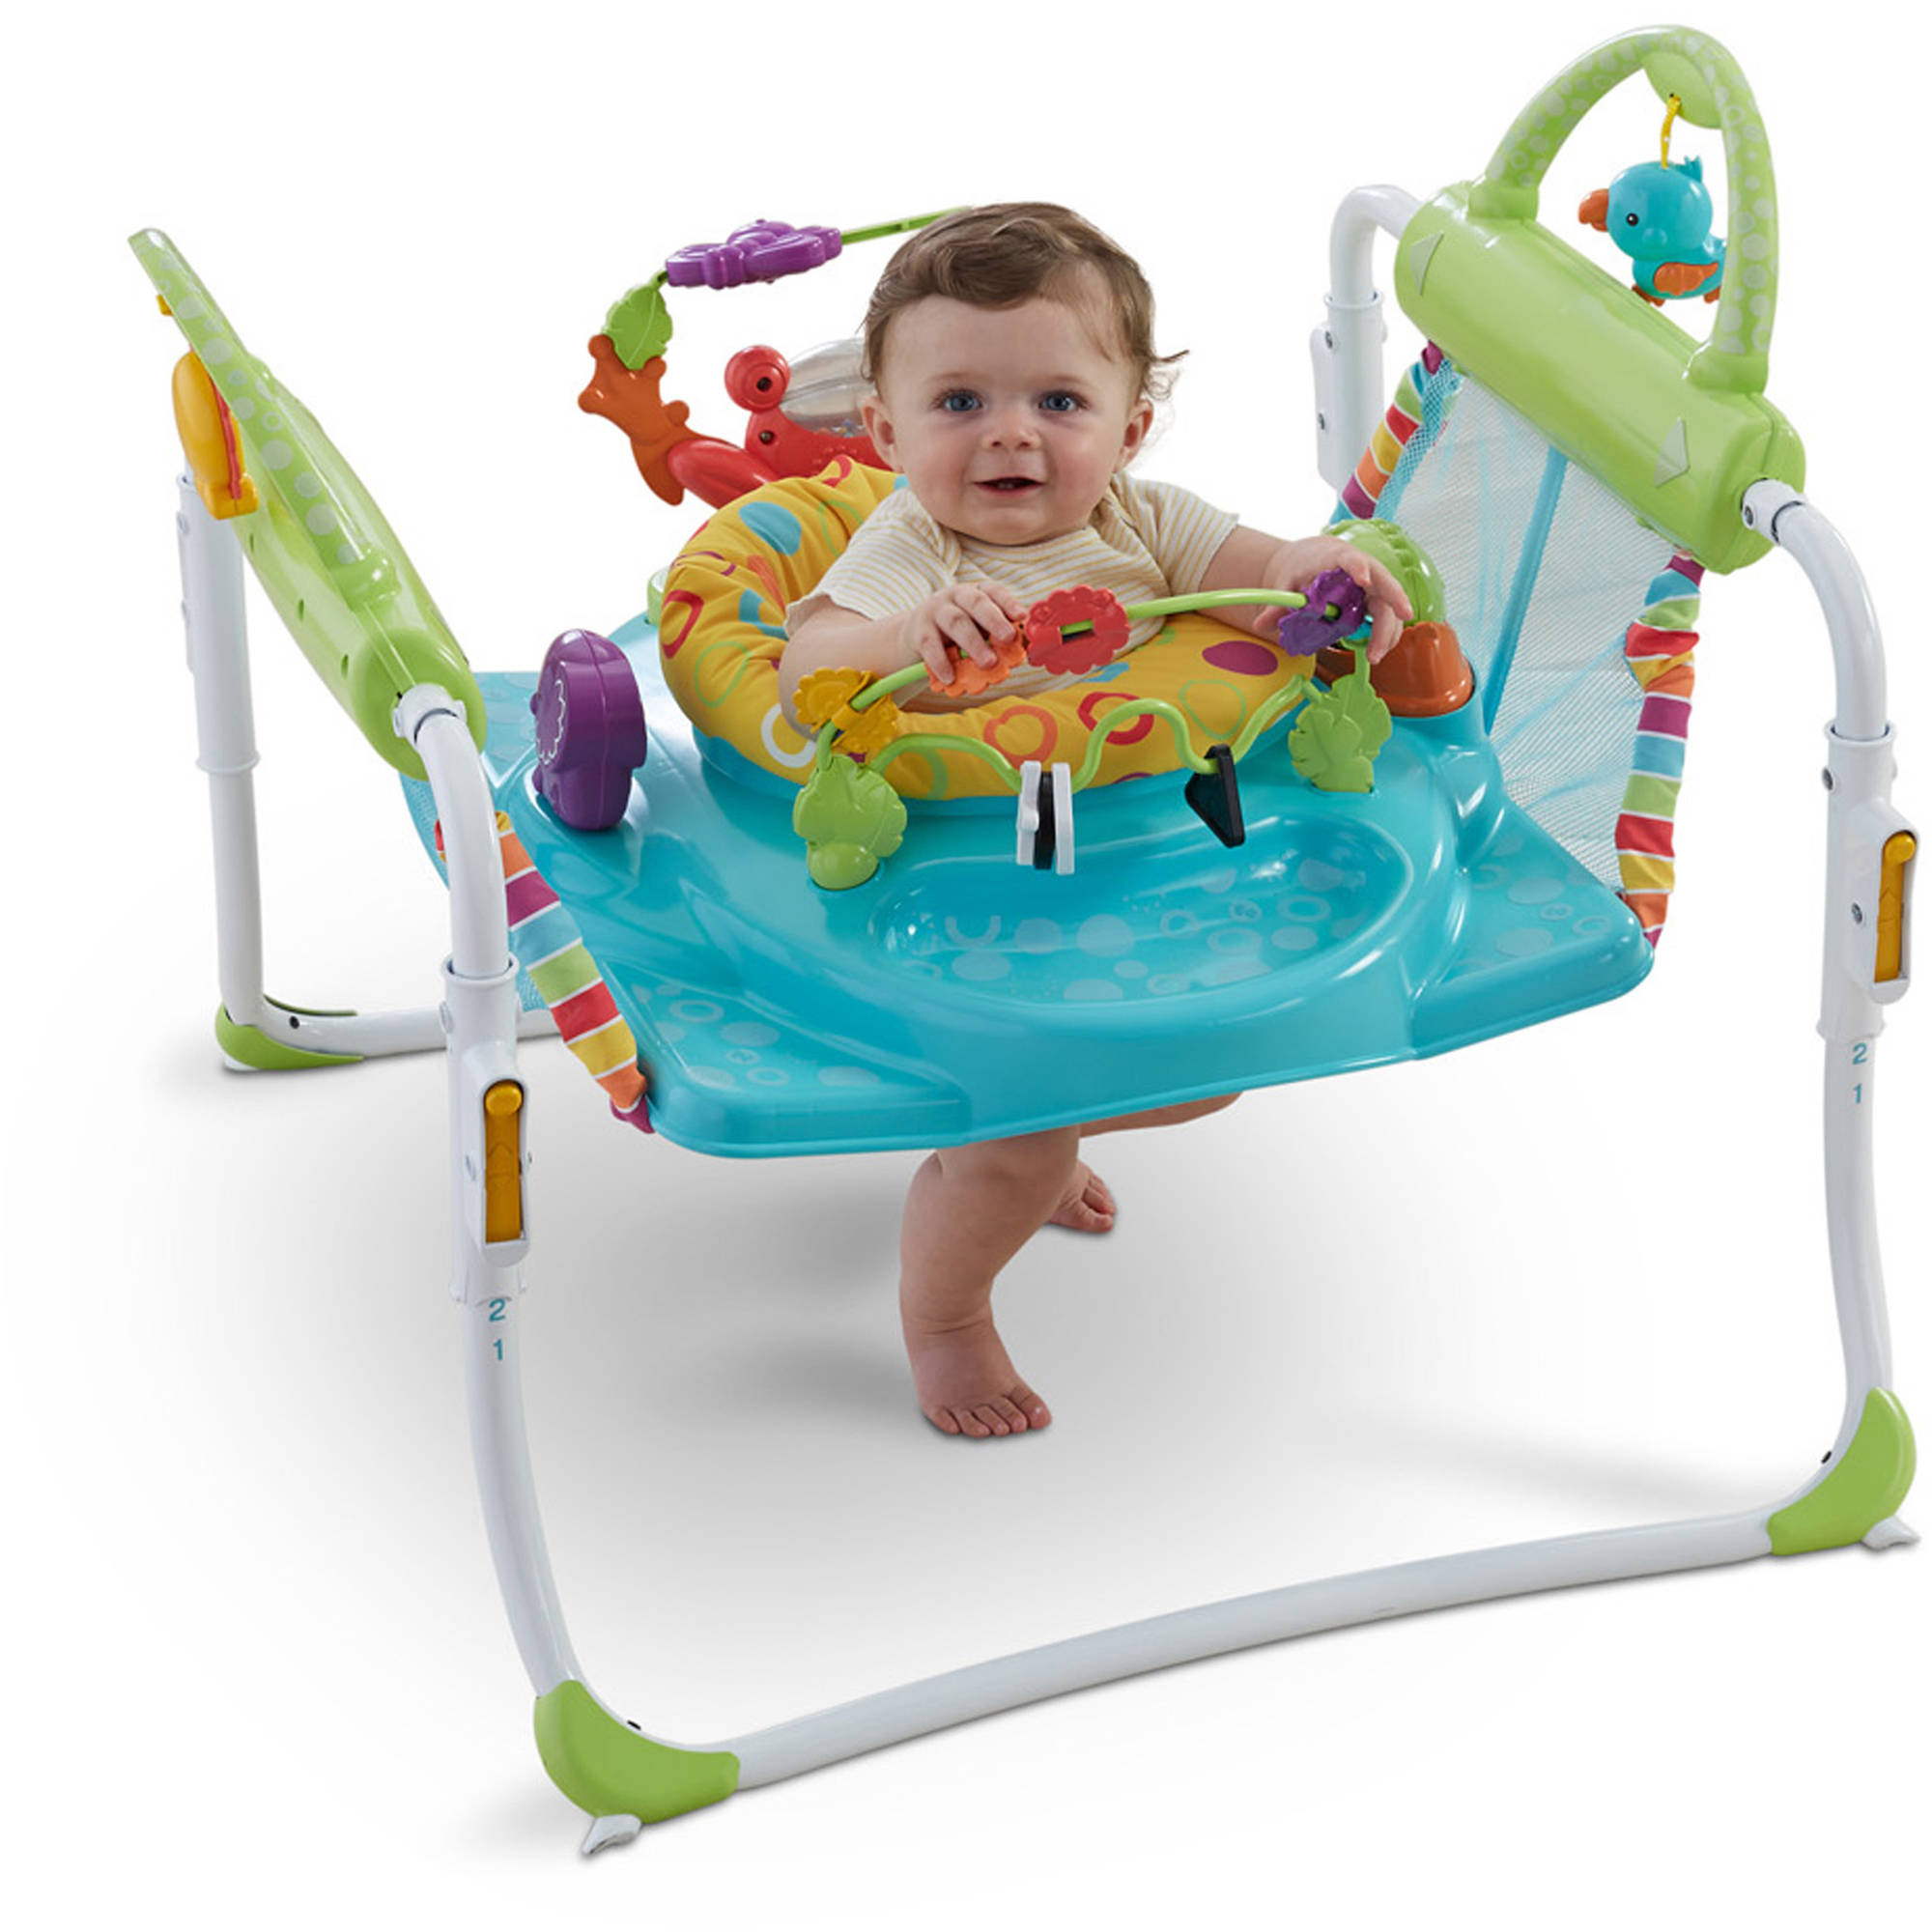 Fisher-Price First Steps Jumperoo - Walmart.com